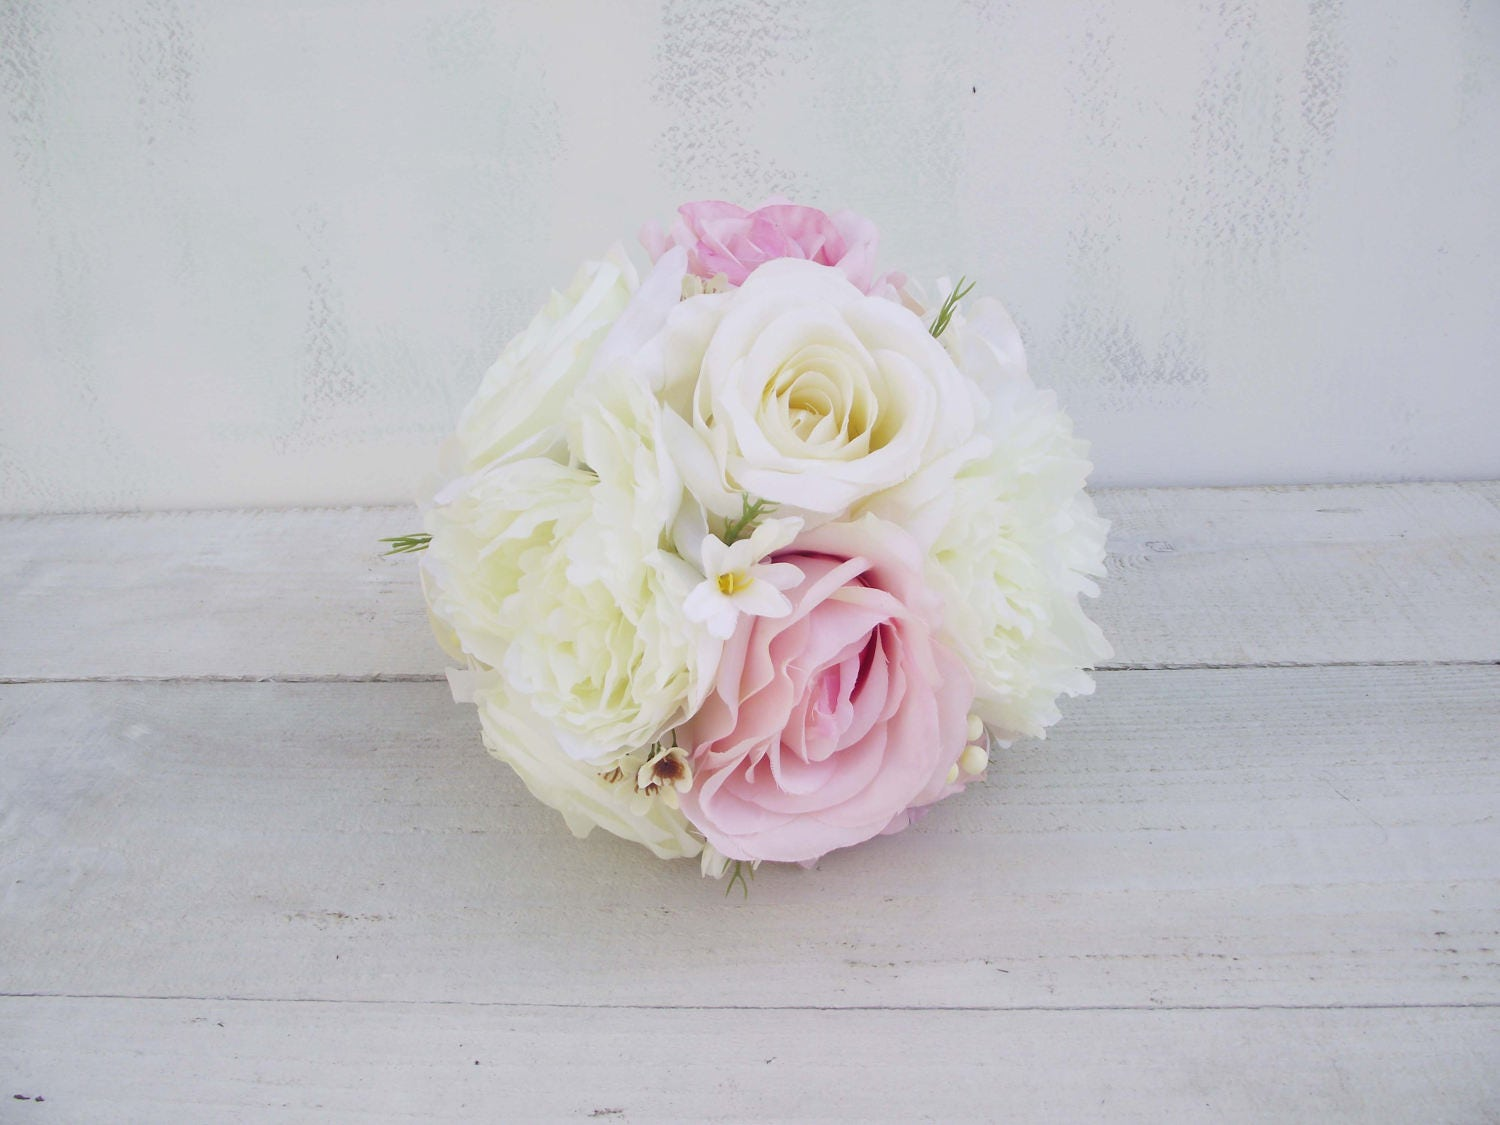 Romantic wedding flowers bridal bouquet bridesmaid bouquet classic round posy bouquet silk flowers ivory pale pink peony rose contemporary